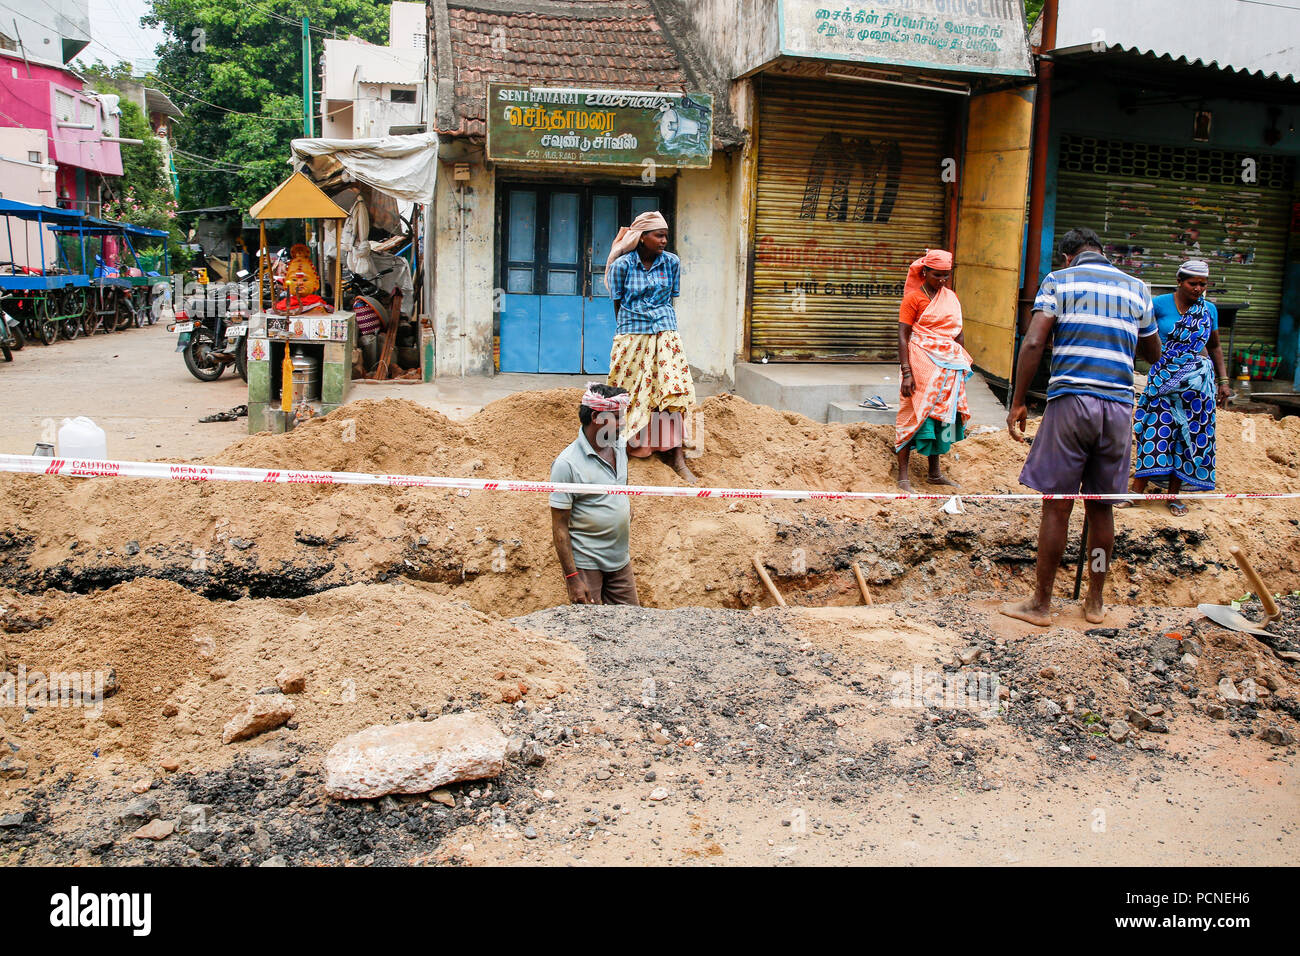 PONDICHERY, PUDUCHERY, INDIA - SEPTEMBER 04, 2017. Unidentified workers with shovels in a trench, dig trenches along the road. Concept of hard work in Stock Photo